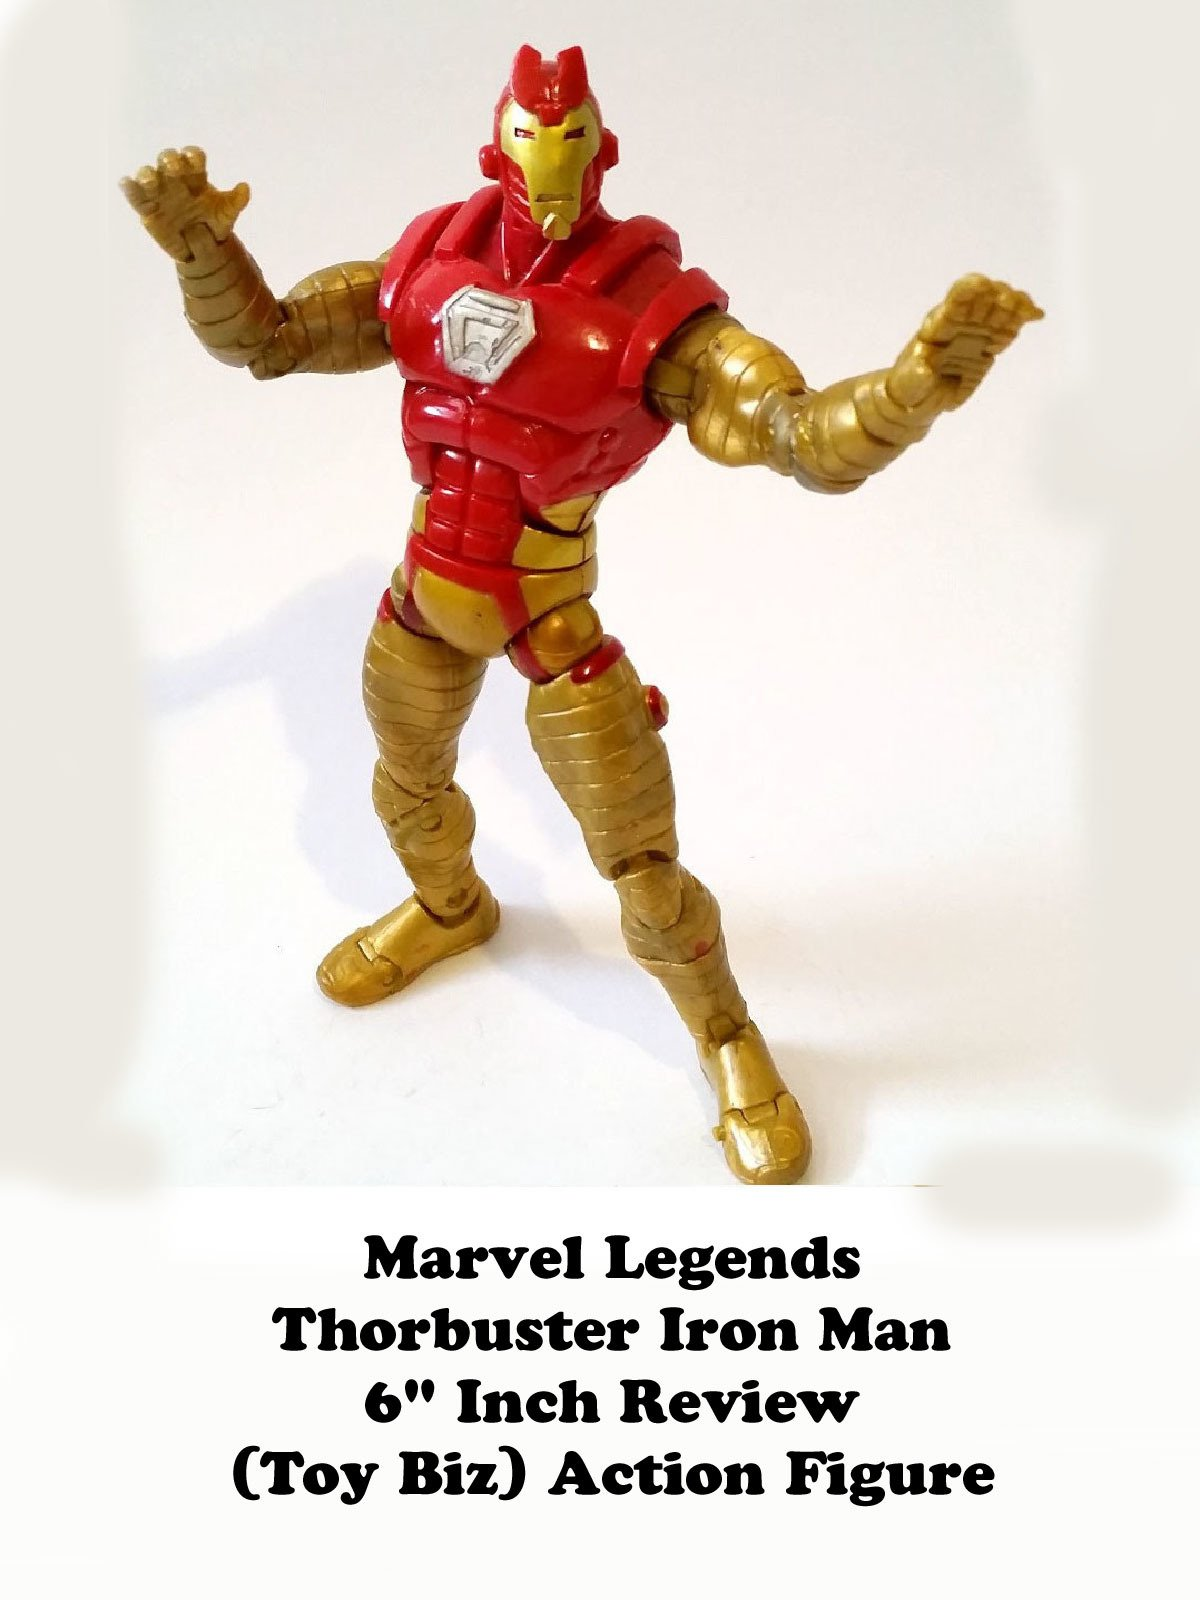 "Review: Marvel Legends Thorbuster Iron Man 6"" Inch Review (Toy Biz) Action Figure"